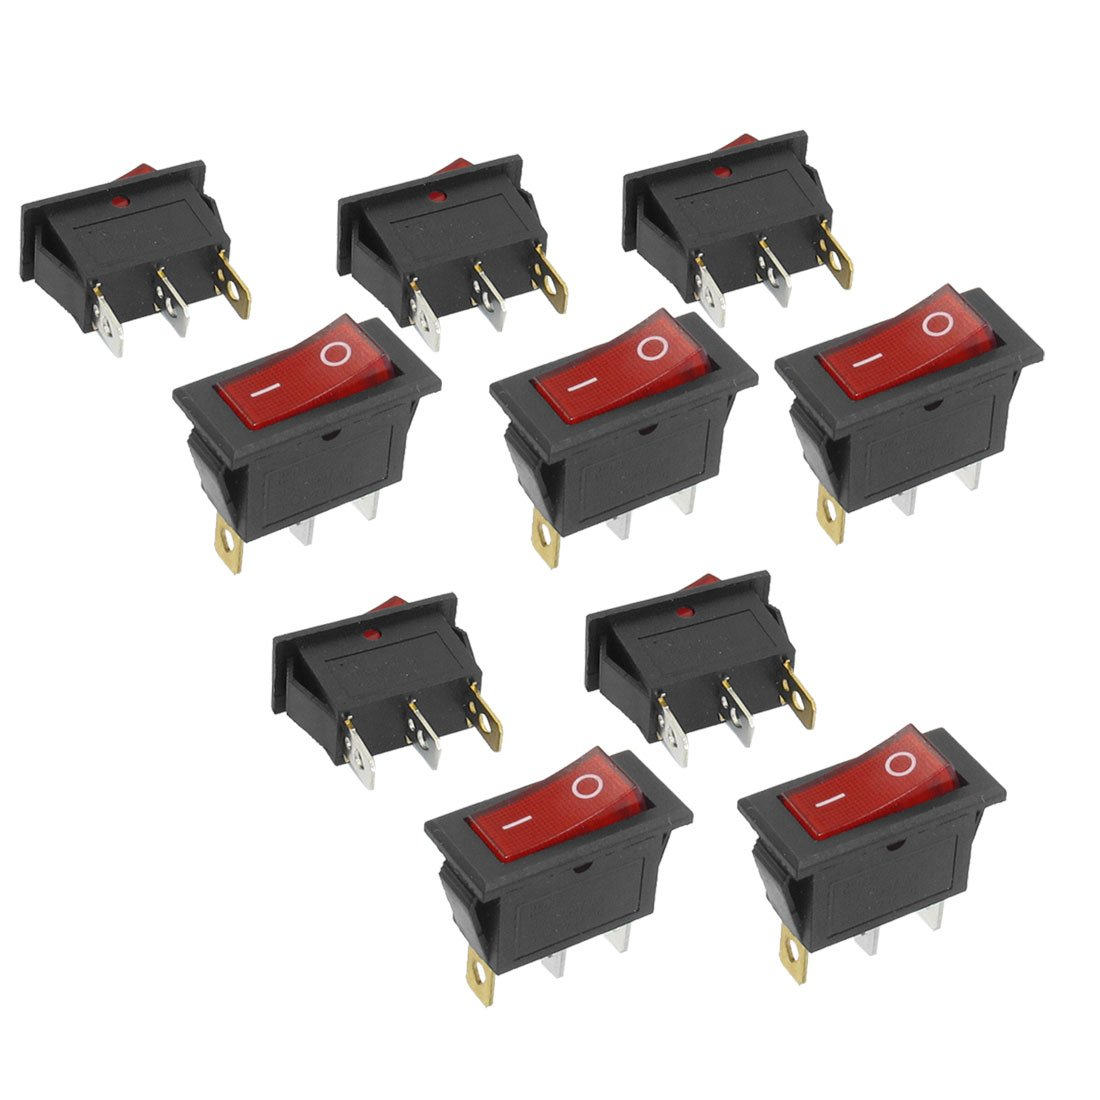 Promotion! 10Pcs 3 Pin SPST Neon Light On/Off Rocker Switch AC 250V/10A 125V/15A 5pcs lot 15 21mm 2pin spst on off g133 boat rocker switch 6a 250v 10a 125v car dash dashboard truck rv atv home